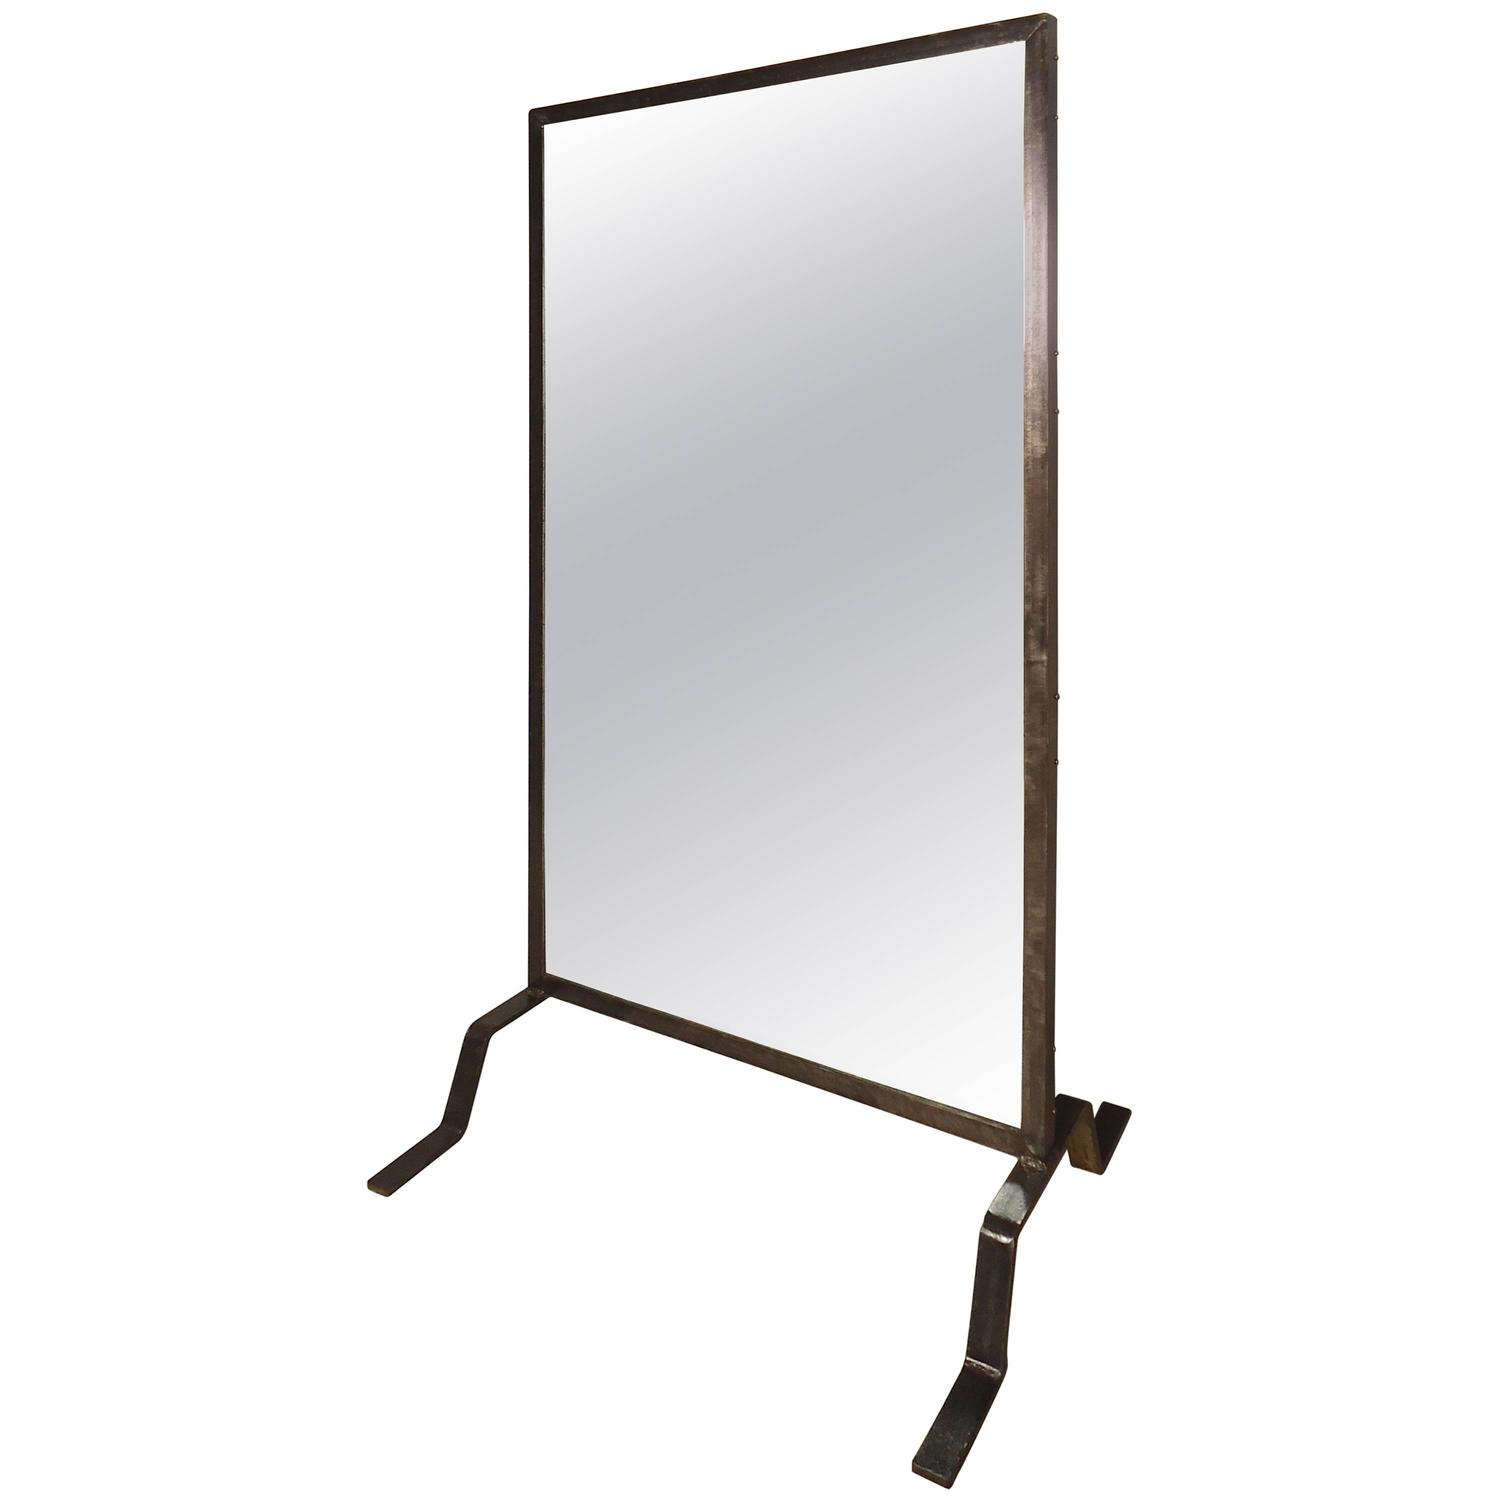 Immense Industrial Standing Mirror For Sale At 1stdibs